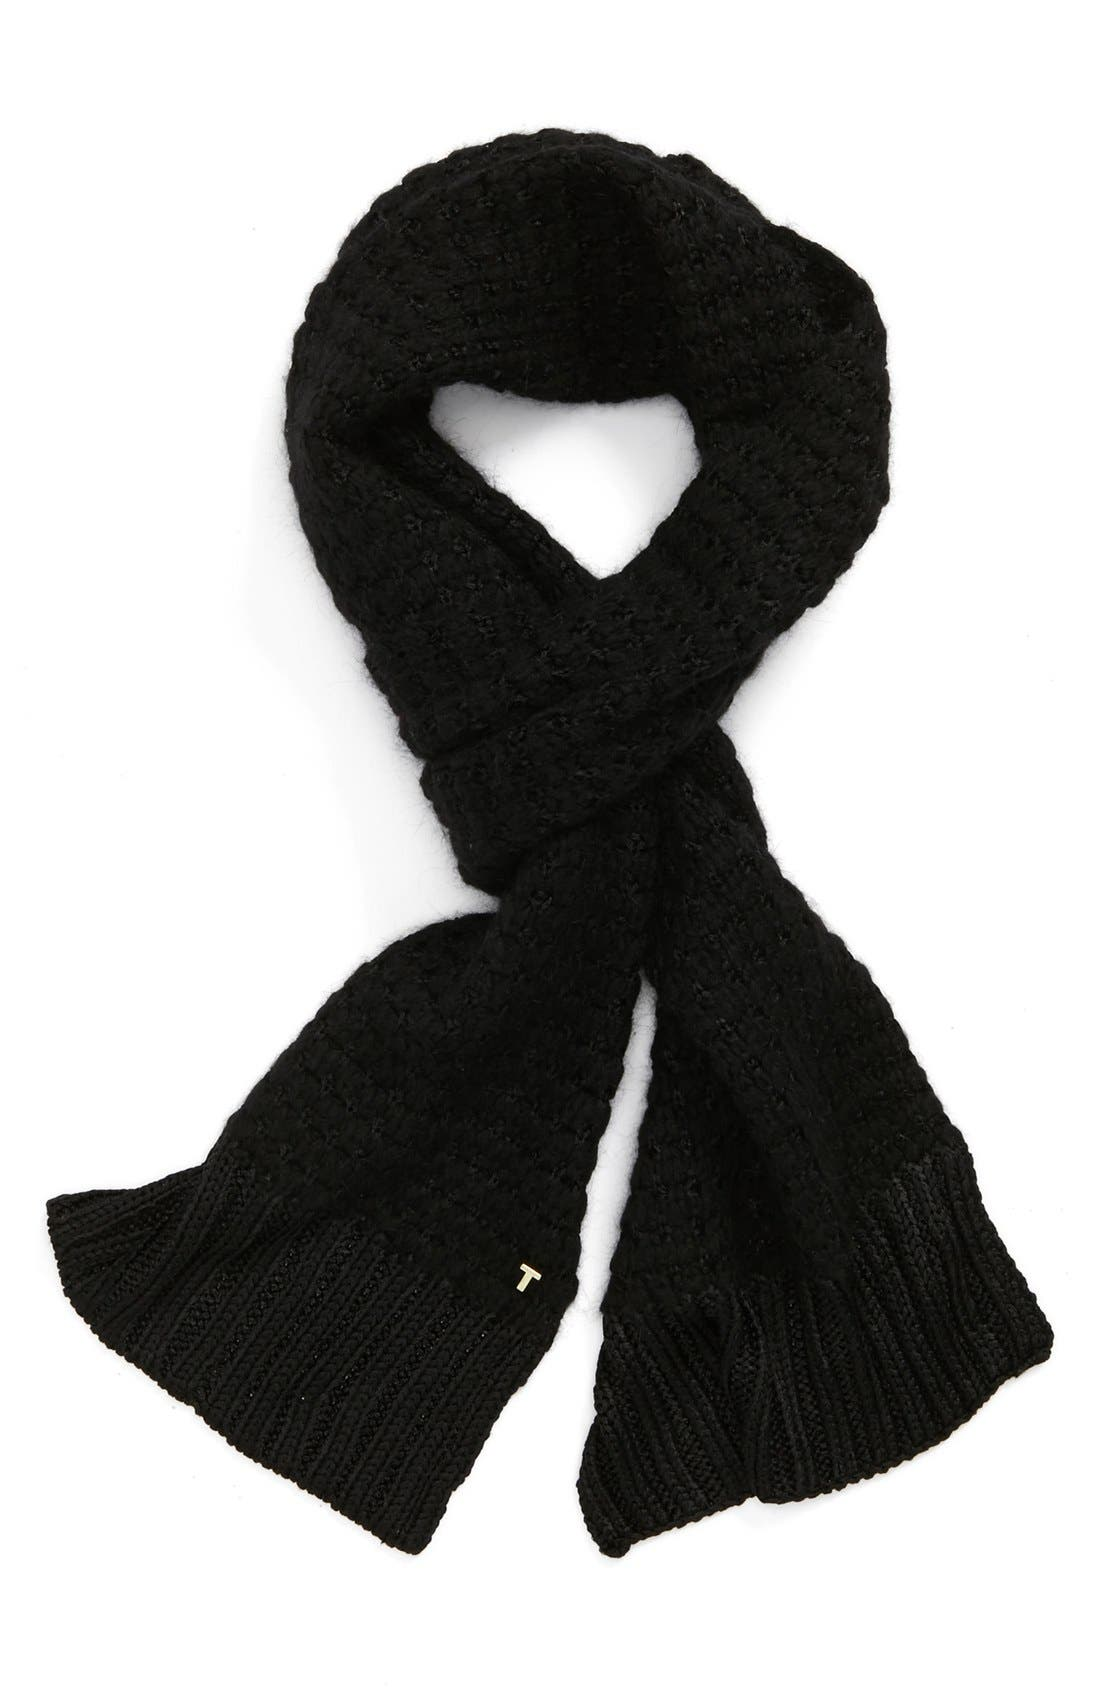 Alternate Image 1 Selected - Ted Baker London Tuck Stitched Knit Scarf